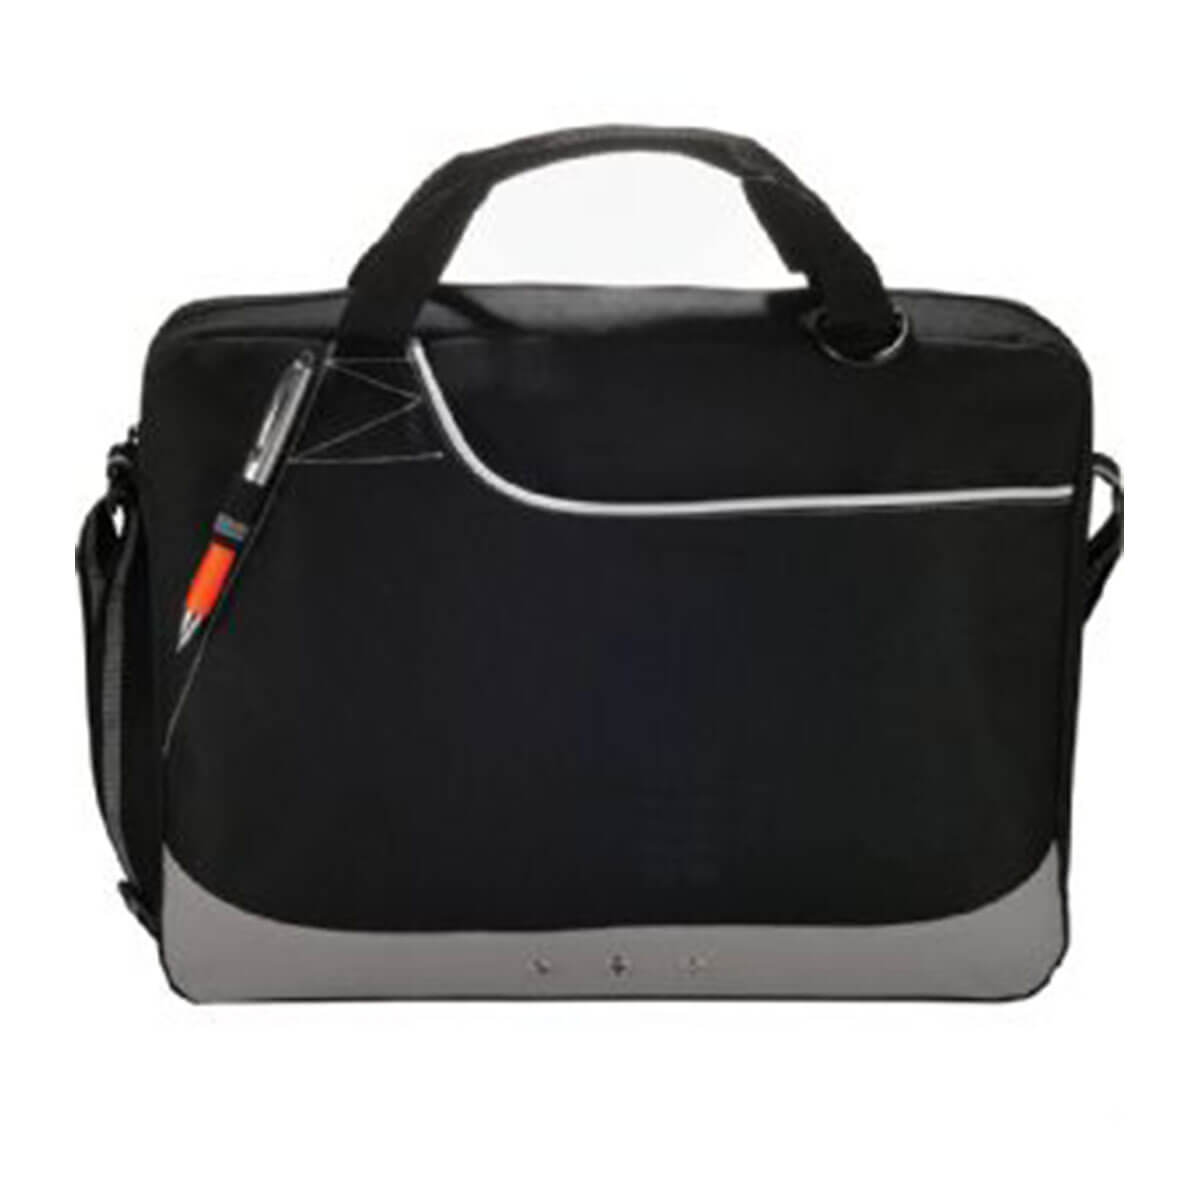 Rubble Brief Bag-Black with White Trim.